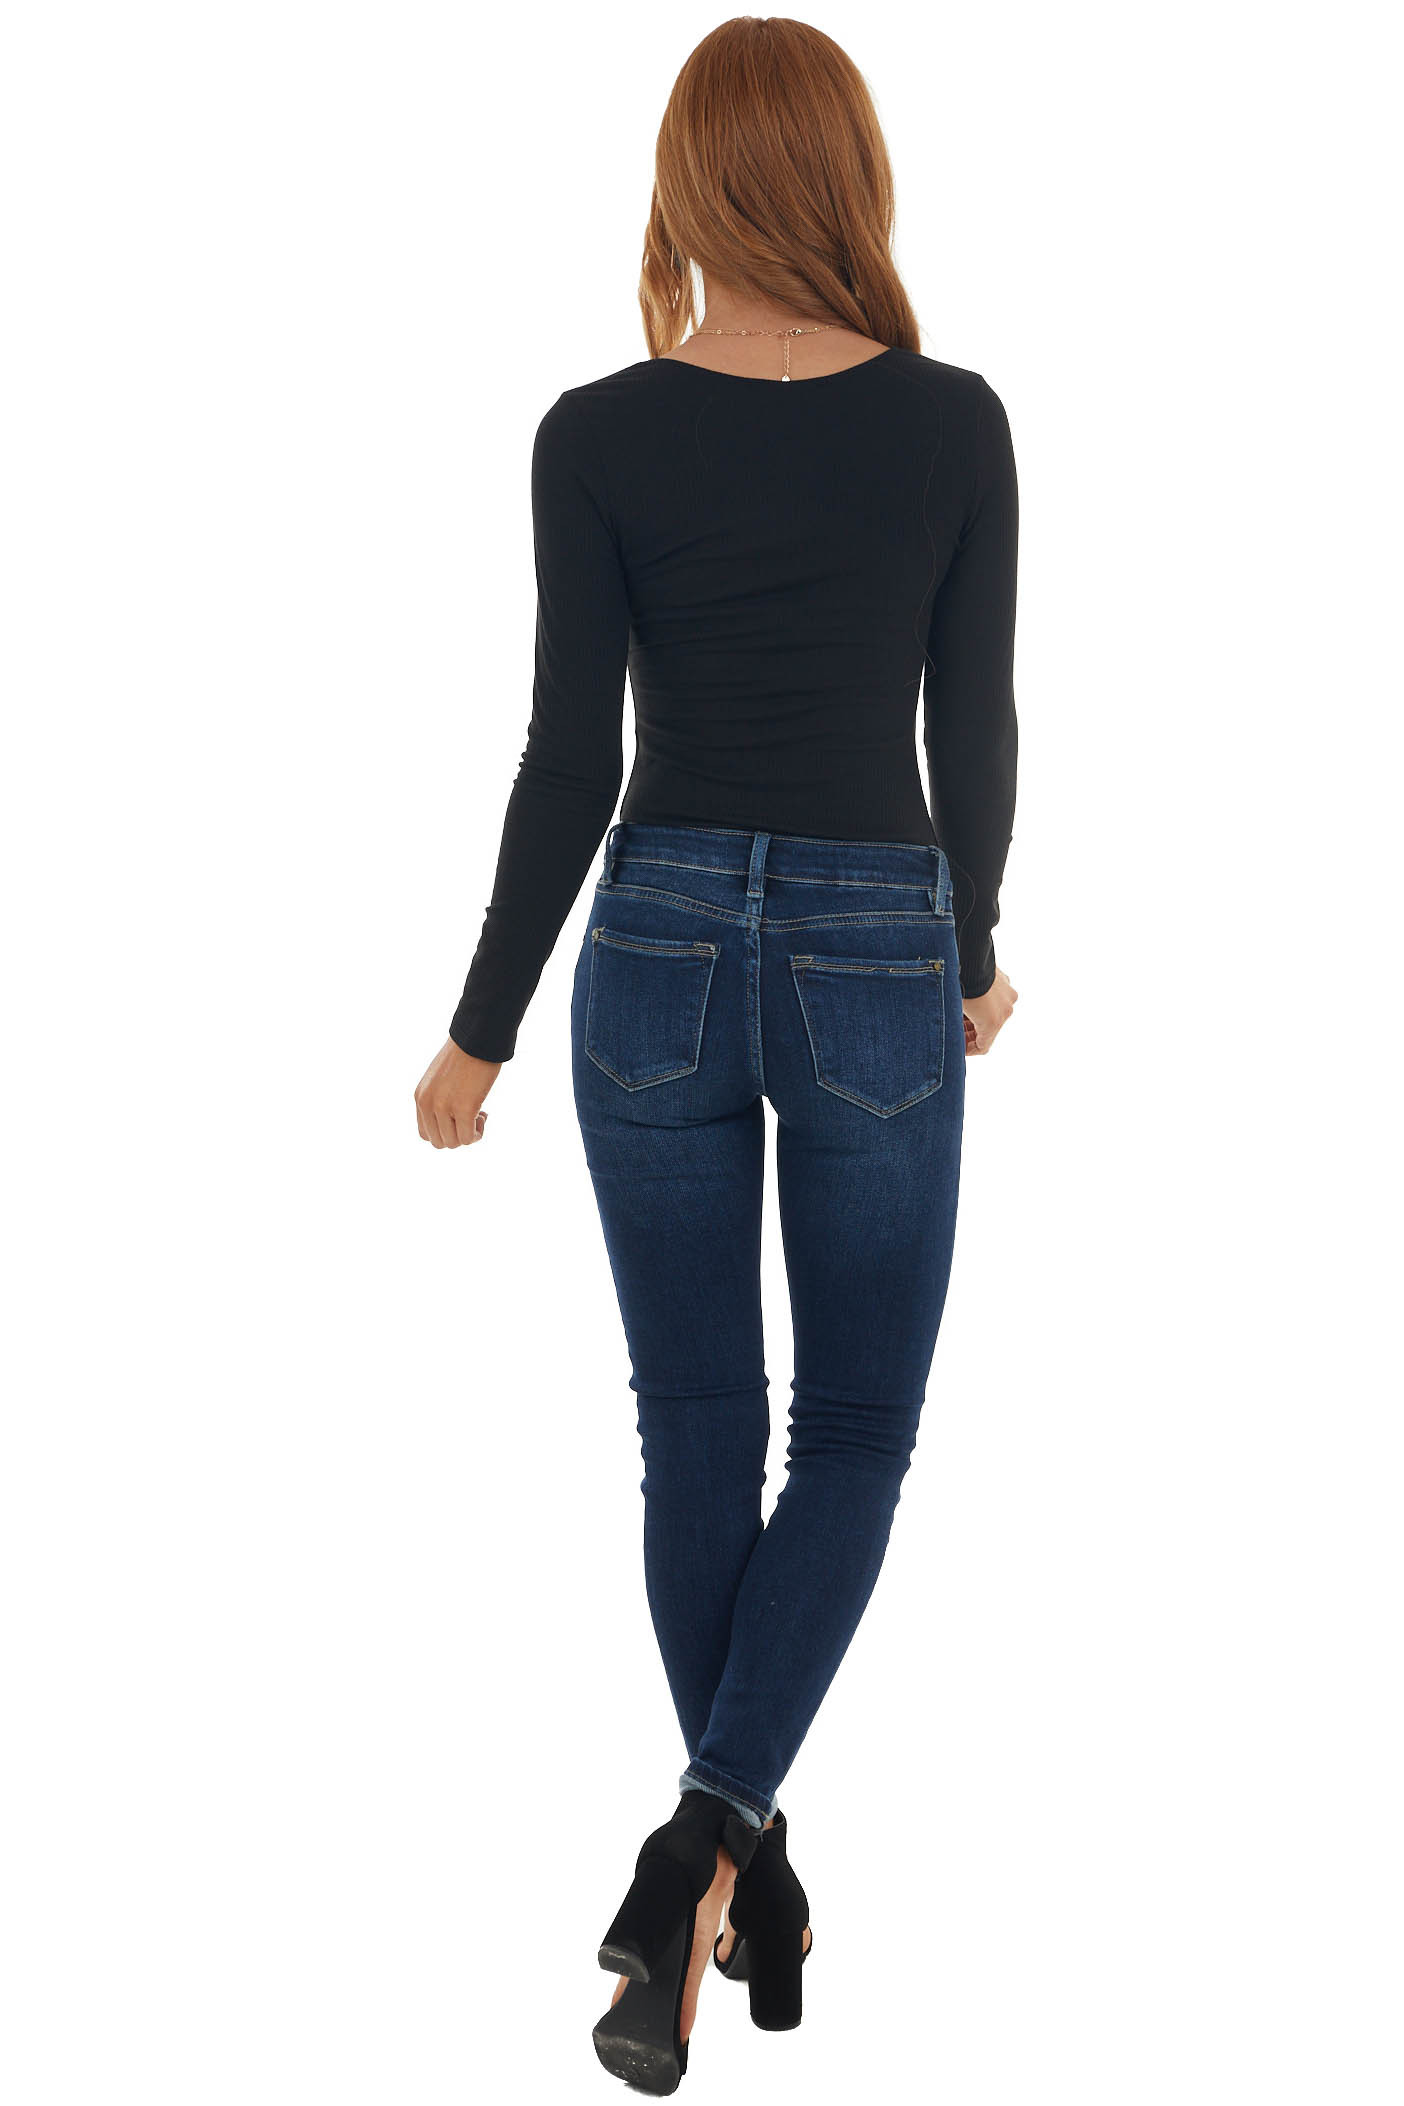 Black Ribbed Knit Bodysuit with Button Detail